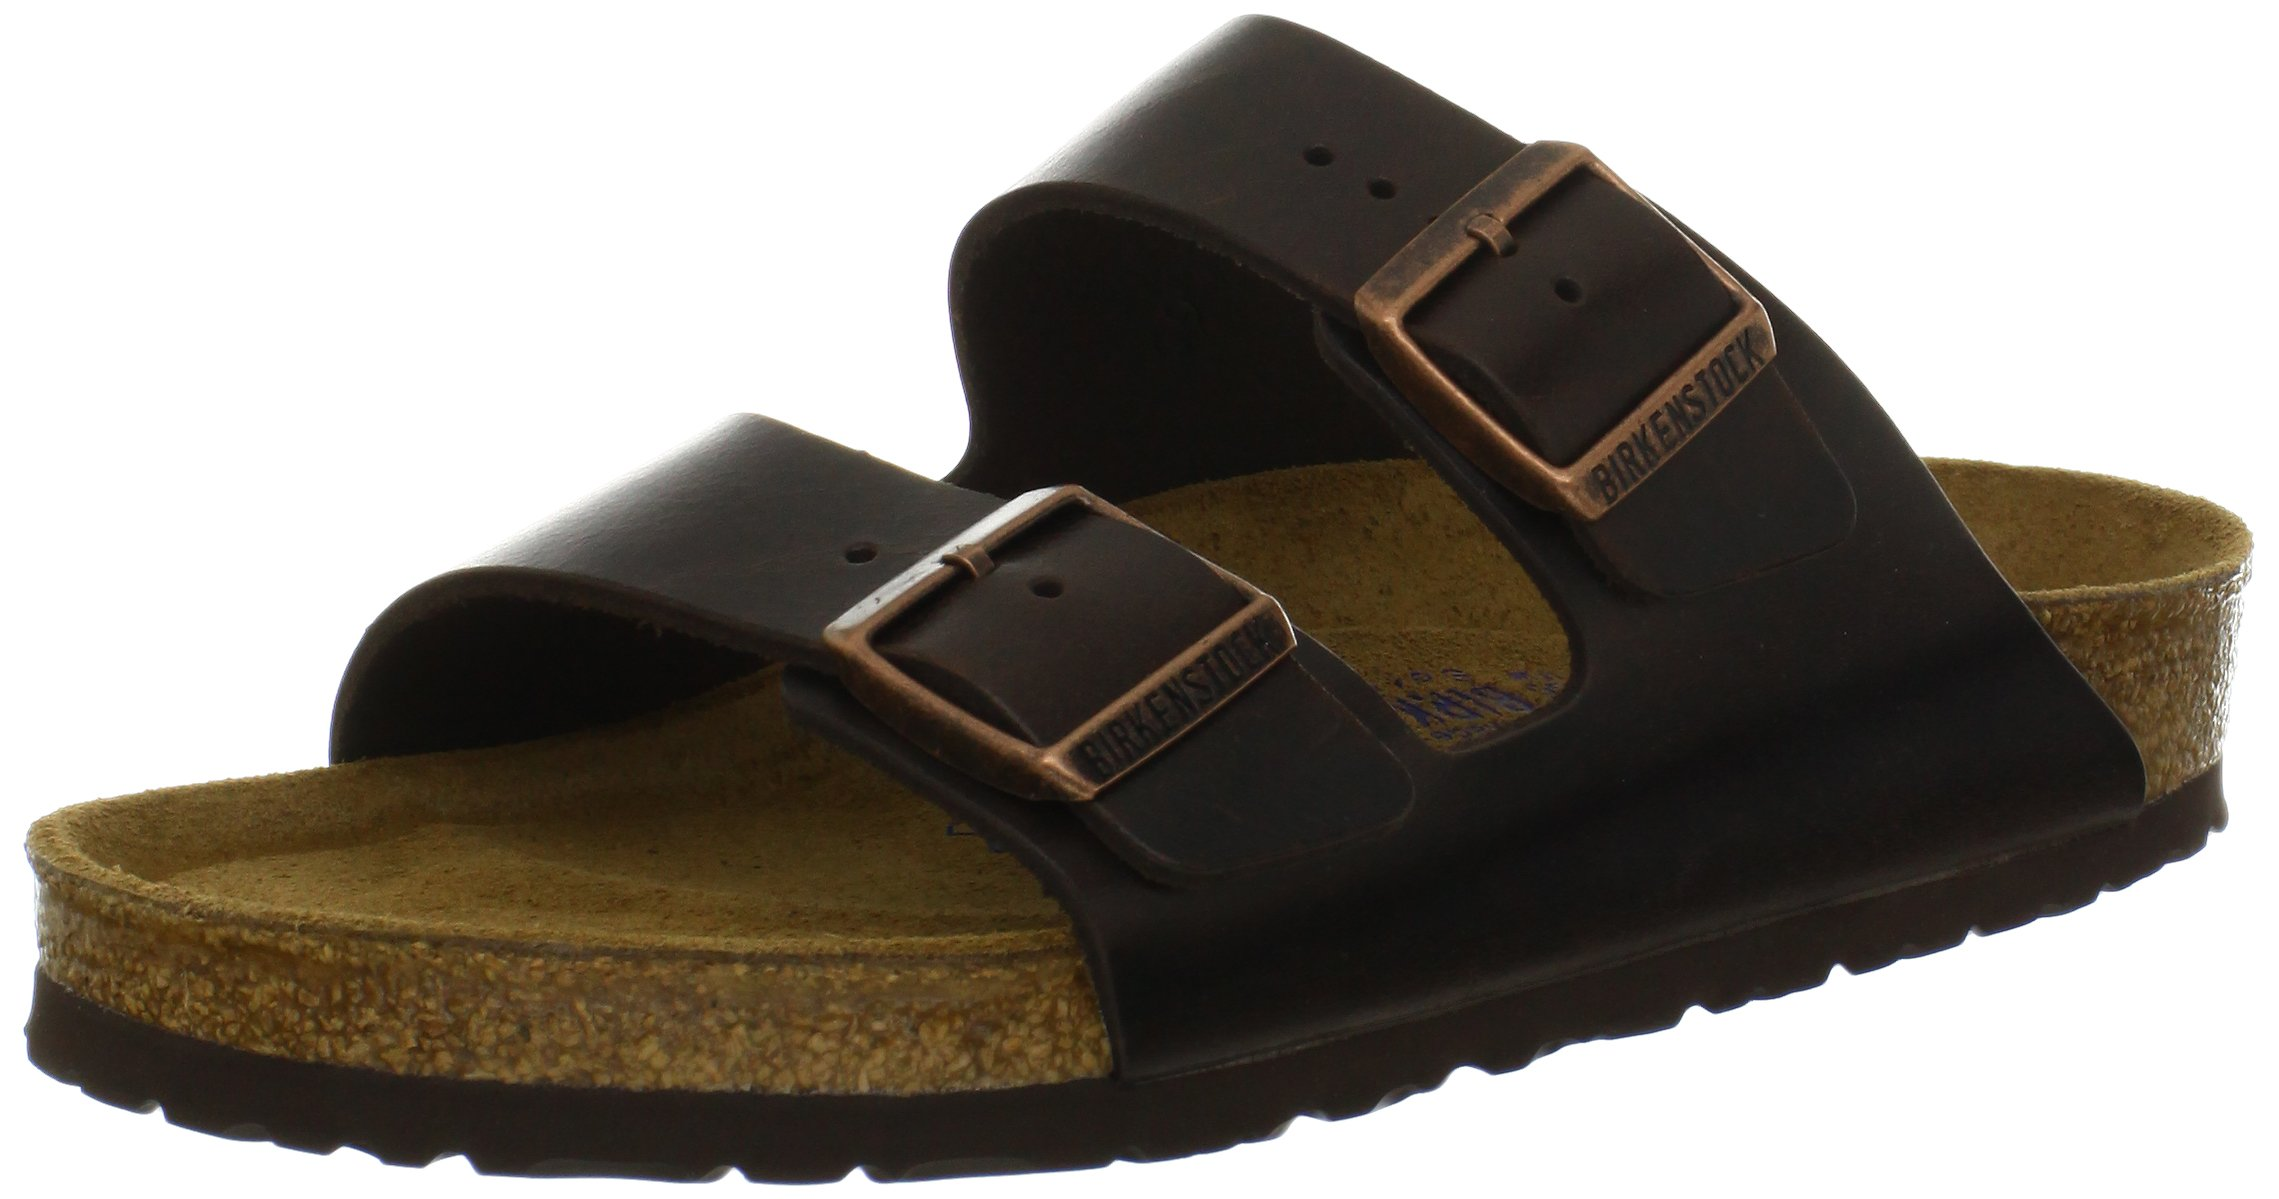 Birkenstock Unisex Arizona Brown Amalfi Leather Sandals - 43 N EU/10-10.5 2A(N) US Men